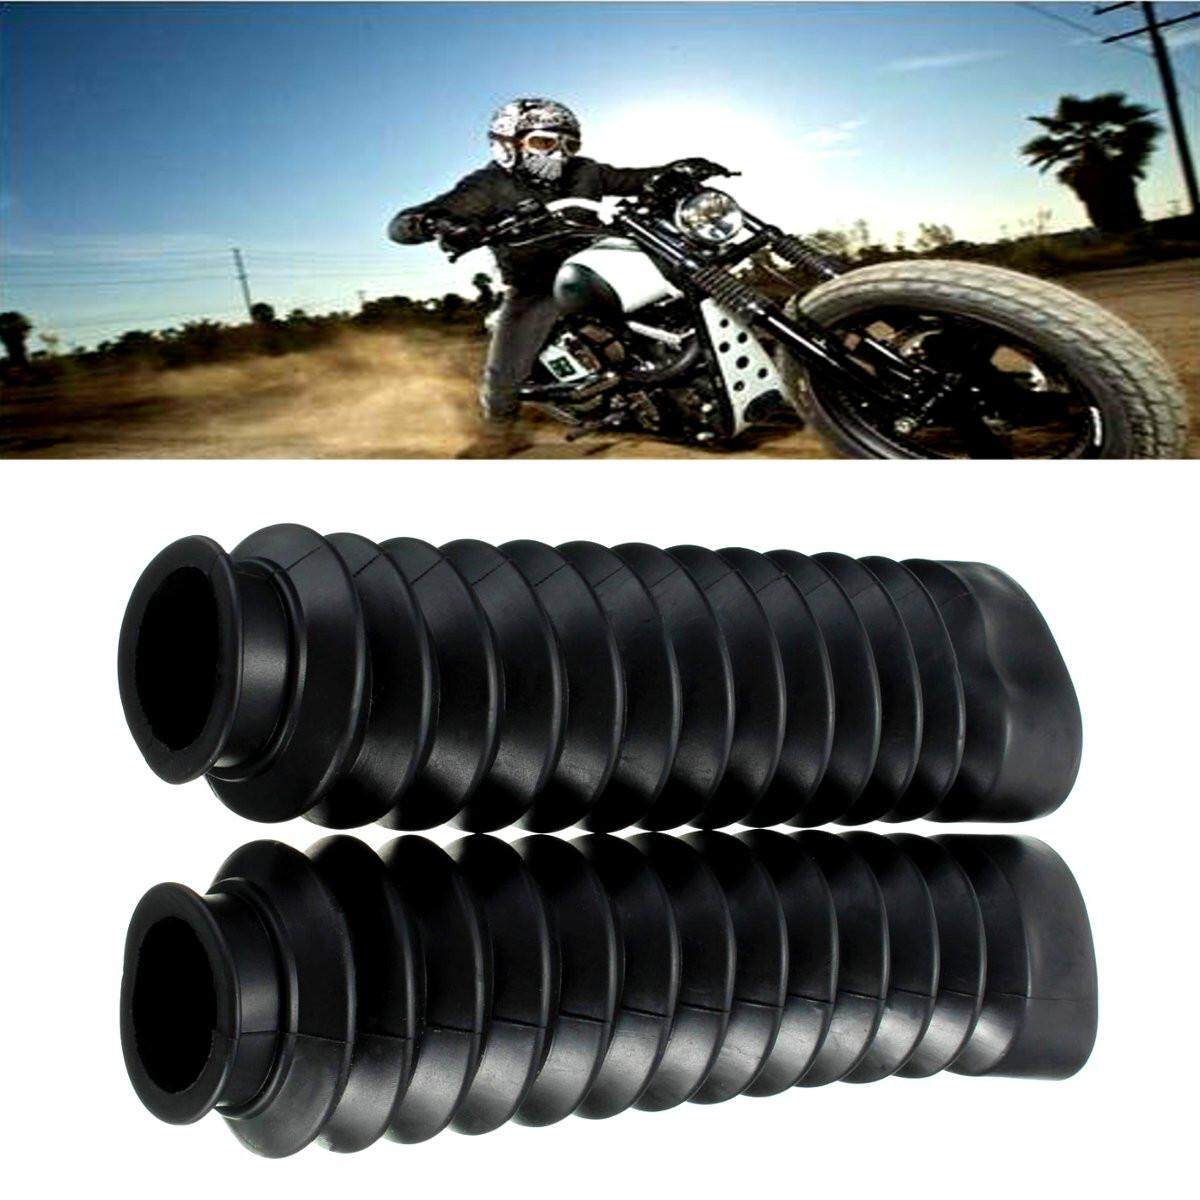 2pcs Front Fork Motorcycle Black Rubber Boots Dust Jacket Cover 200x50x38mm By Freebang.